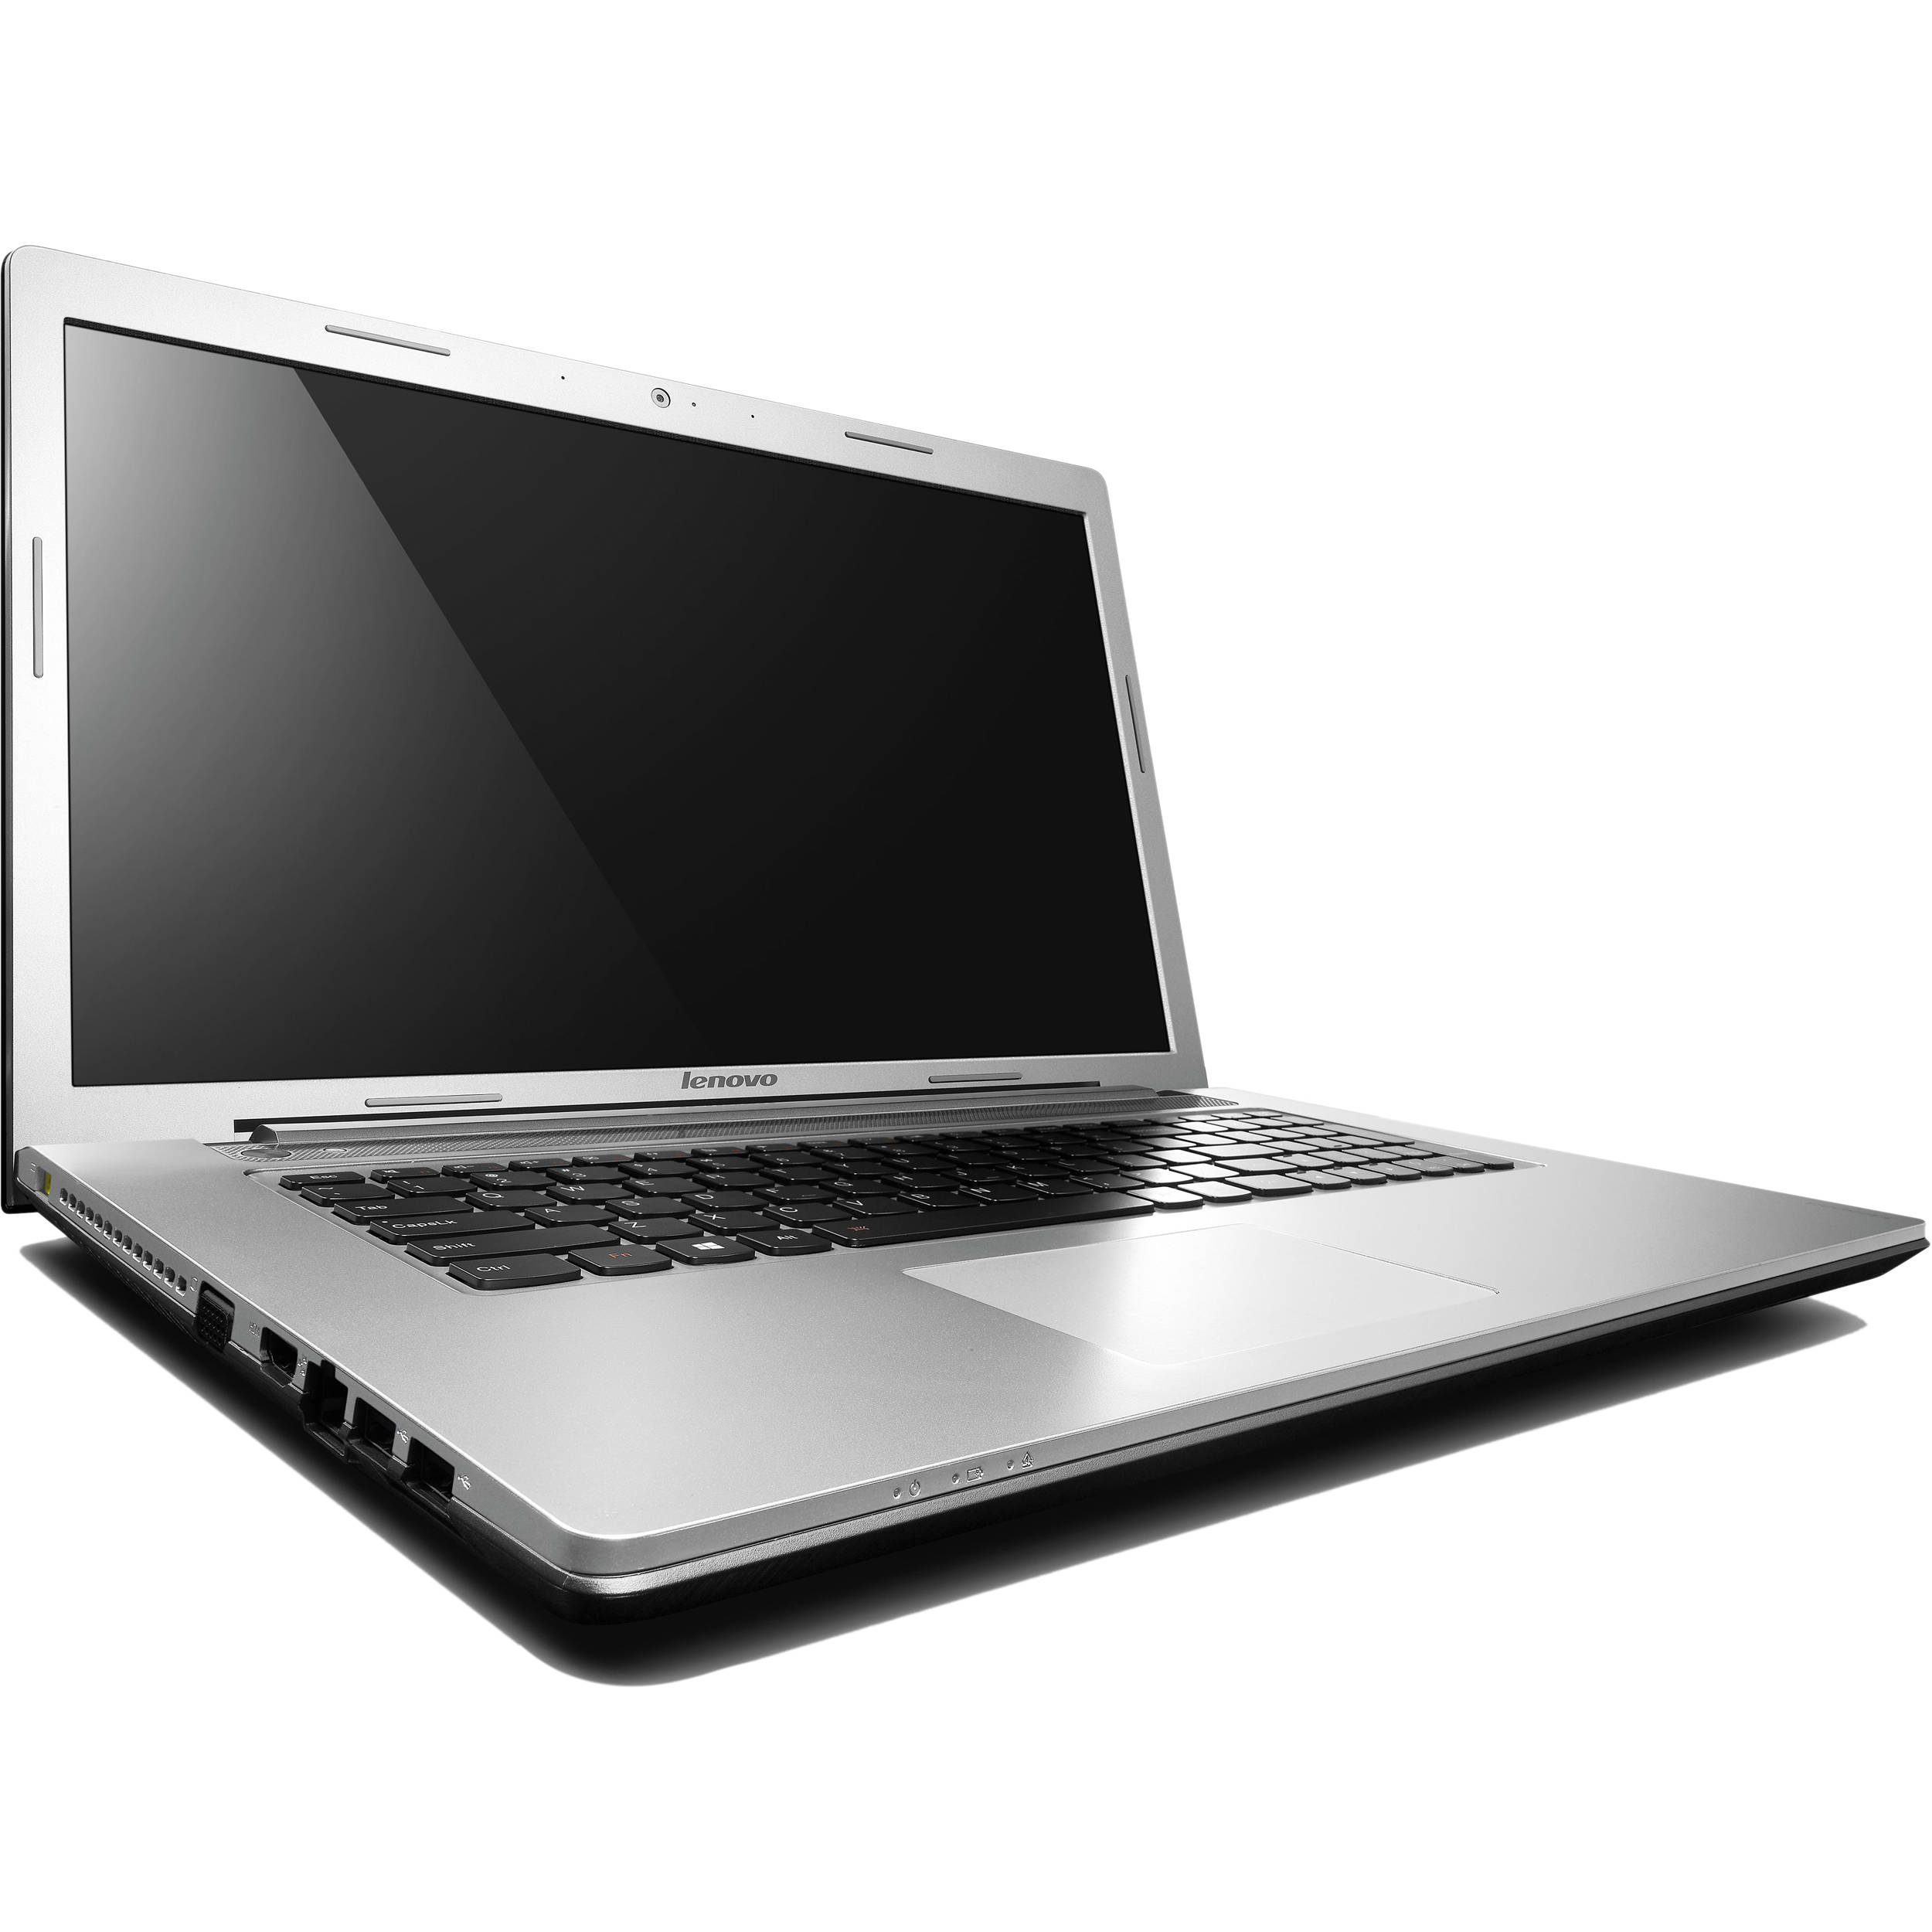 Lenovo IdeaPad Z710 Intel Bluetooth Driver for Windows